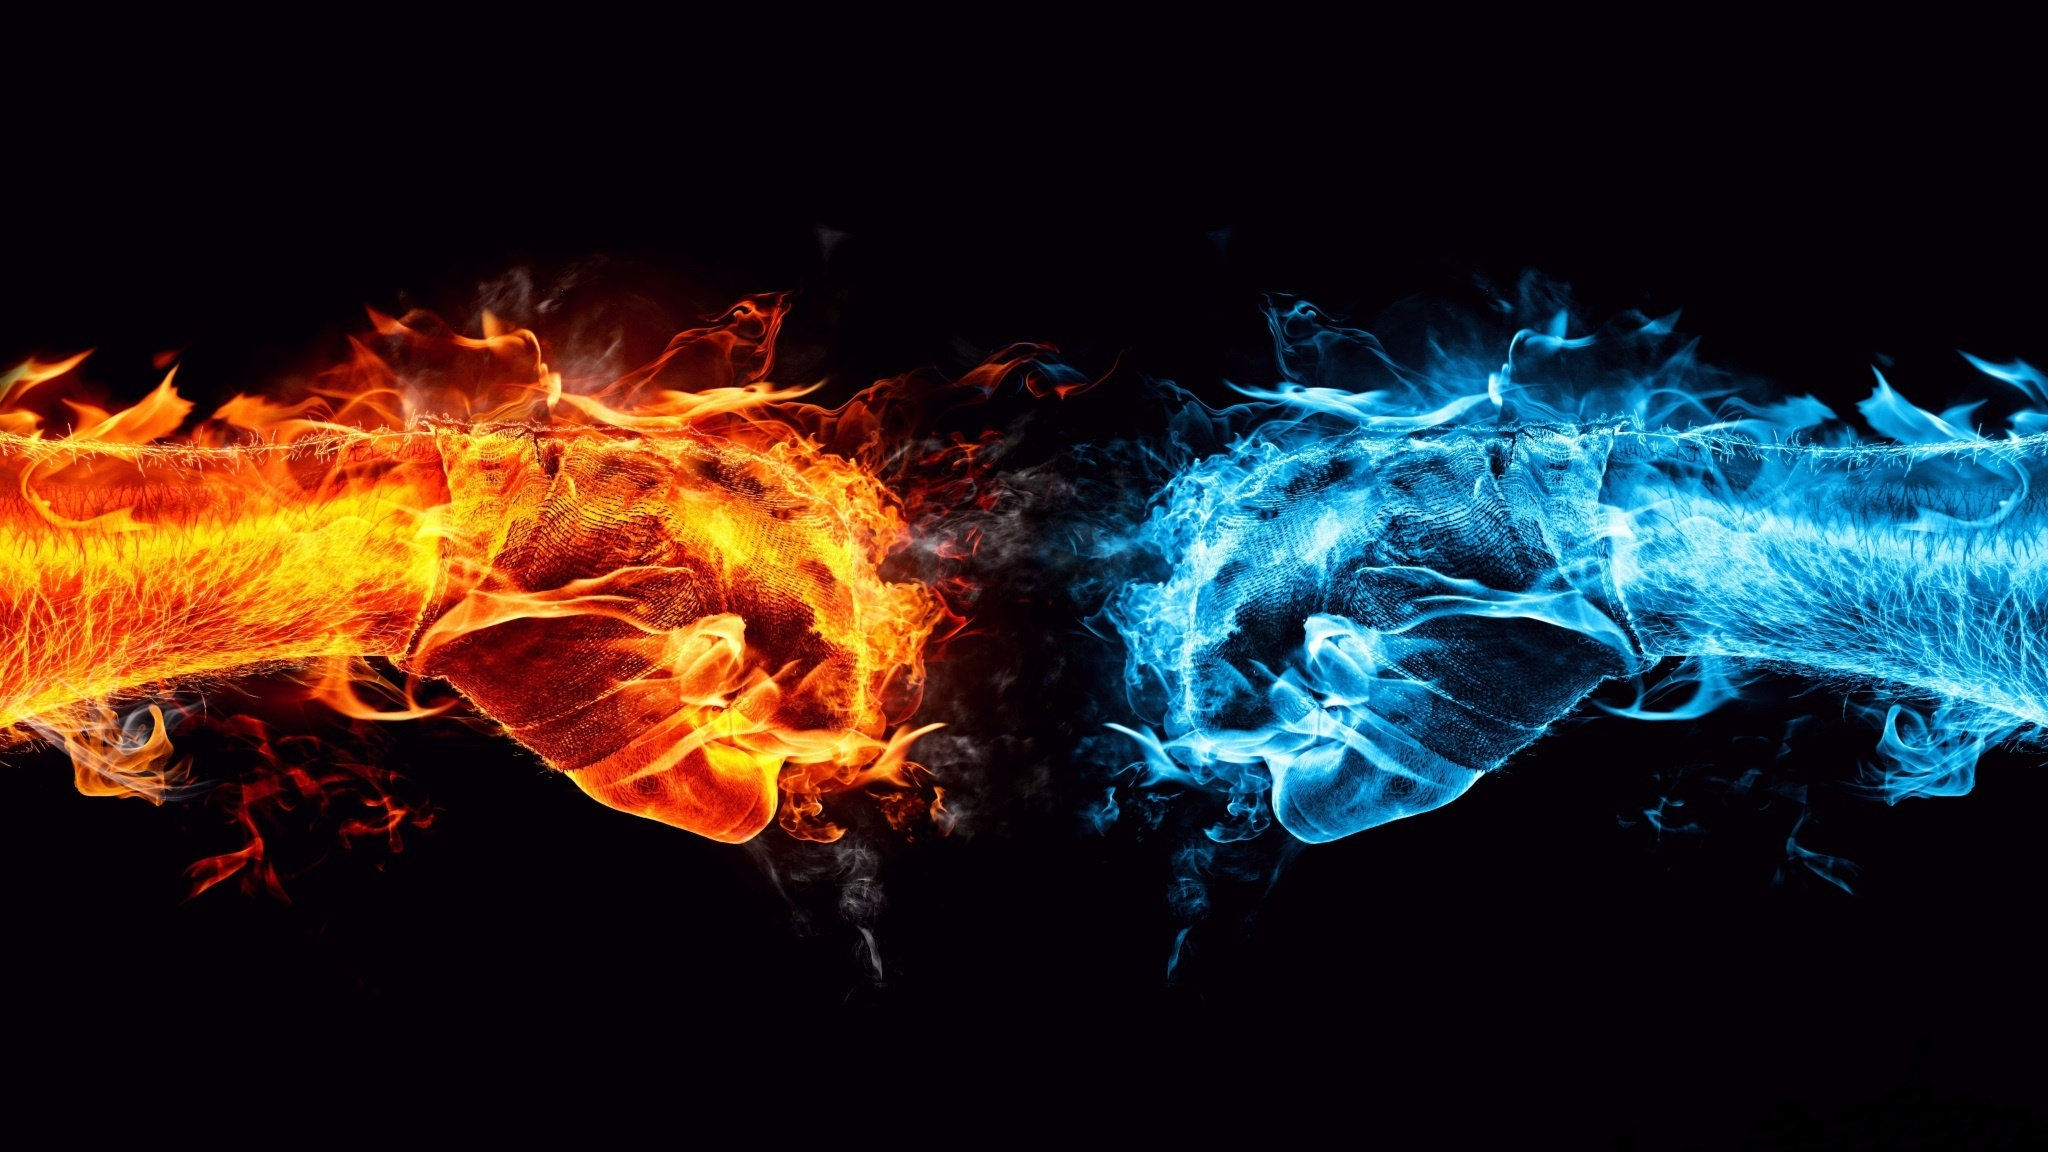 Fire And Ice Wallpapers Hd For Desktop Backgrounds